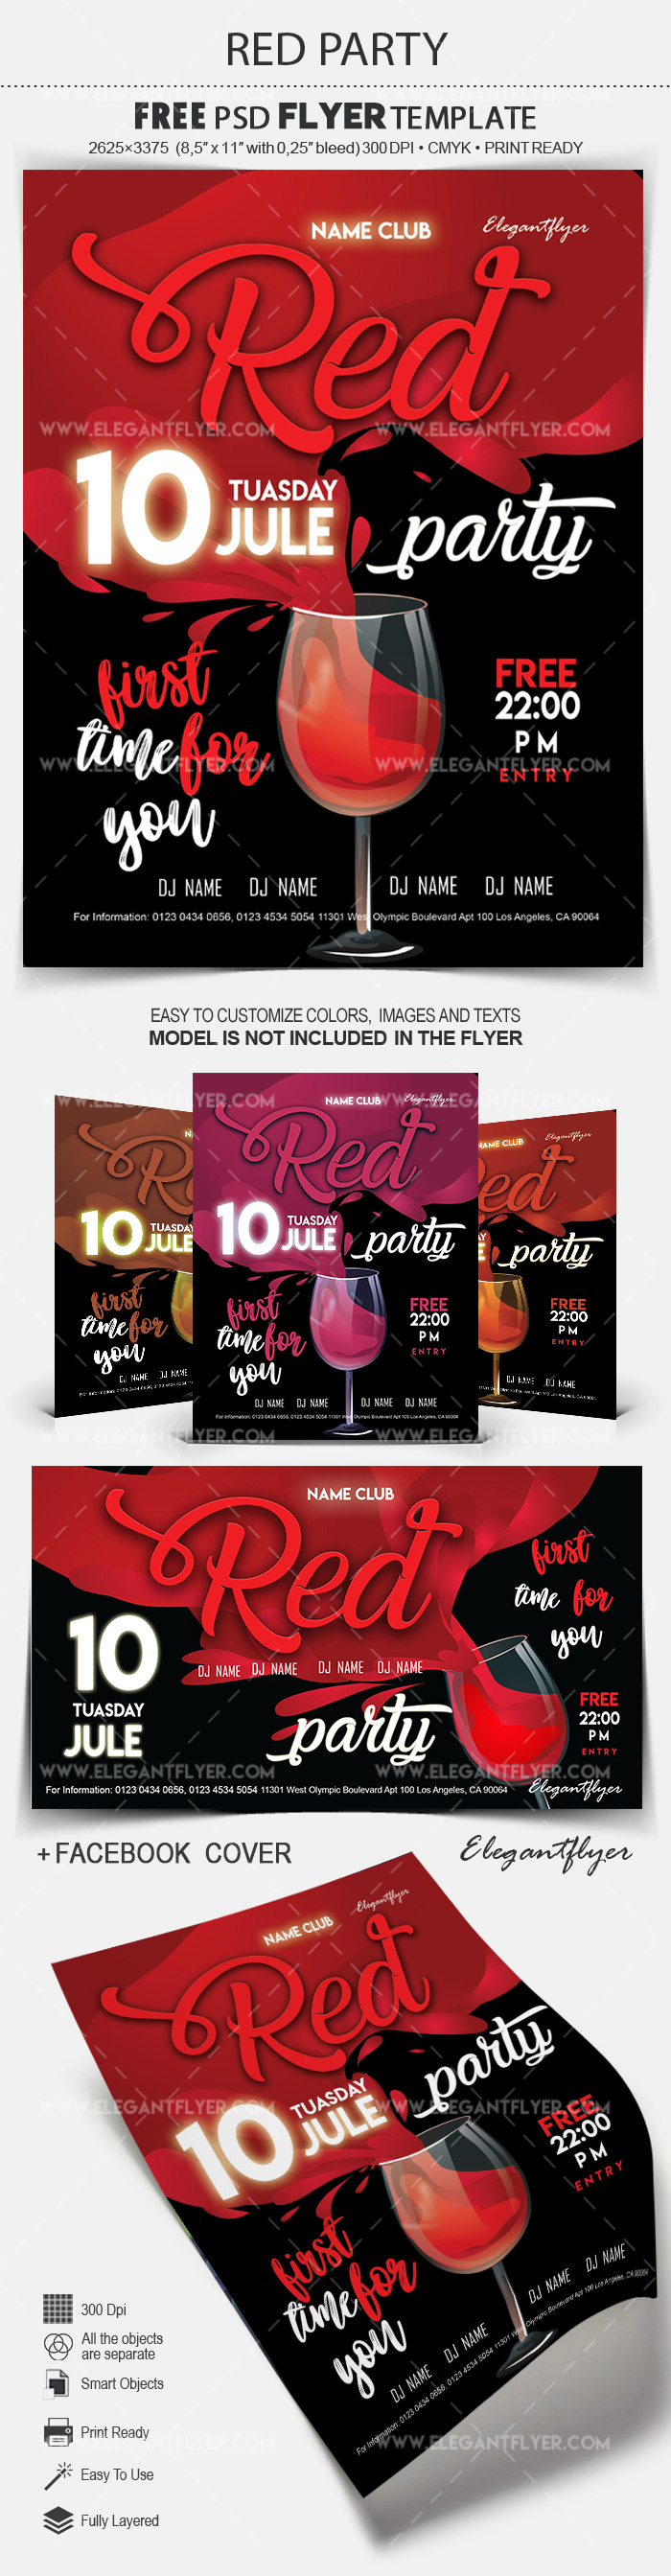 Red Party – Free Flyer PSD Template